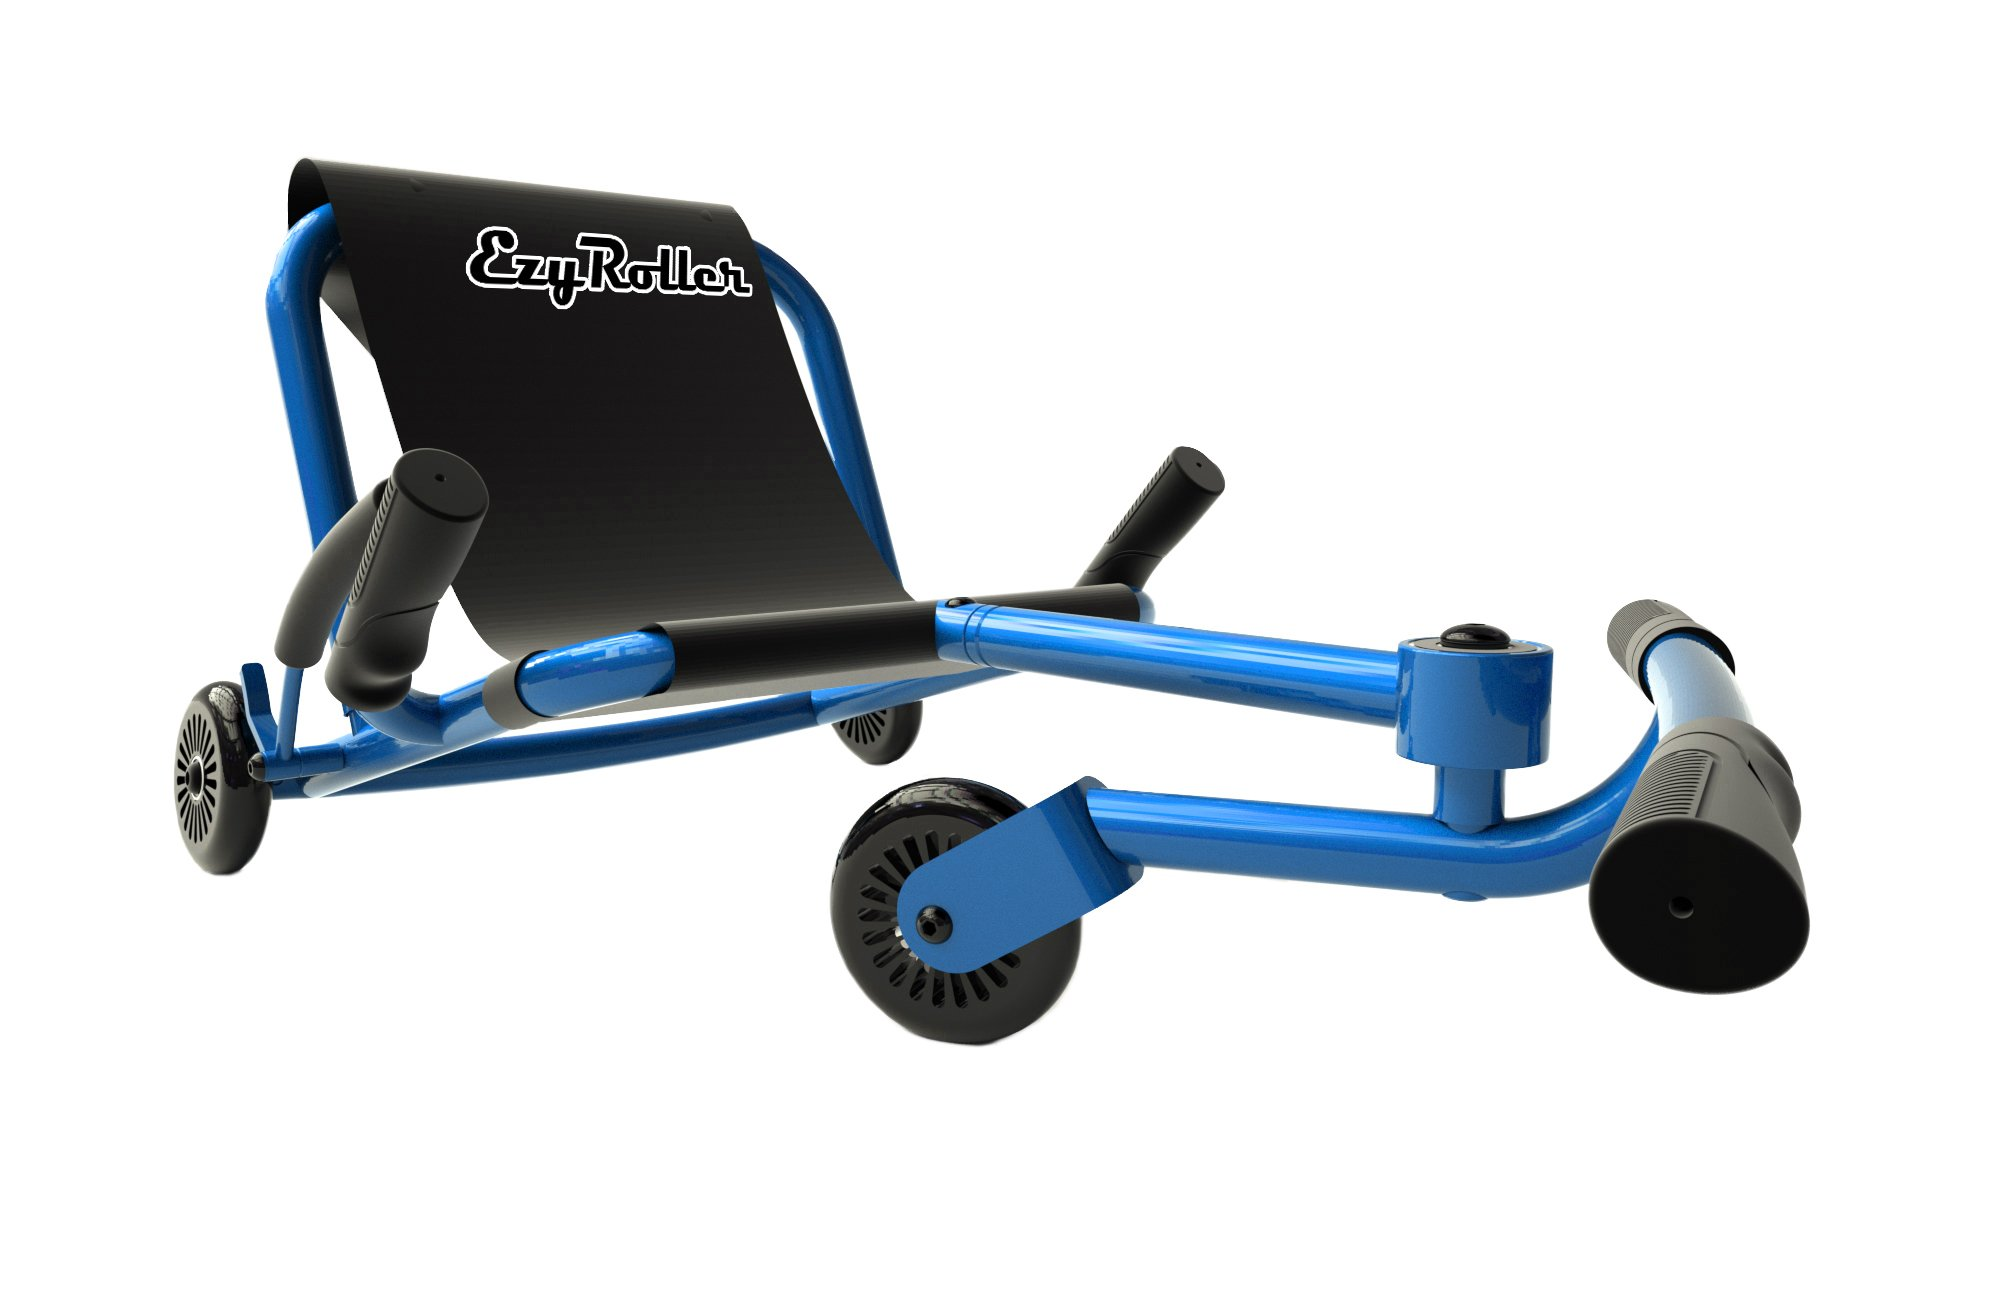 Ezyroller Ride On Toy - New Twist On A Classic Scooter - Blue